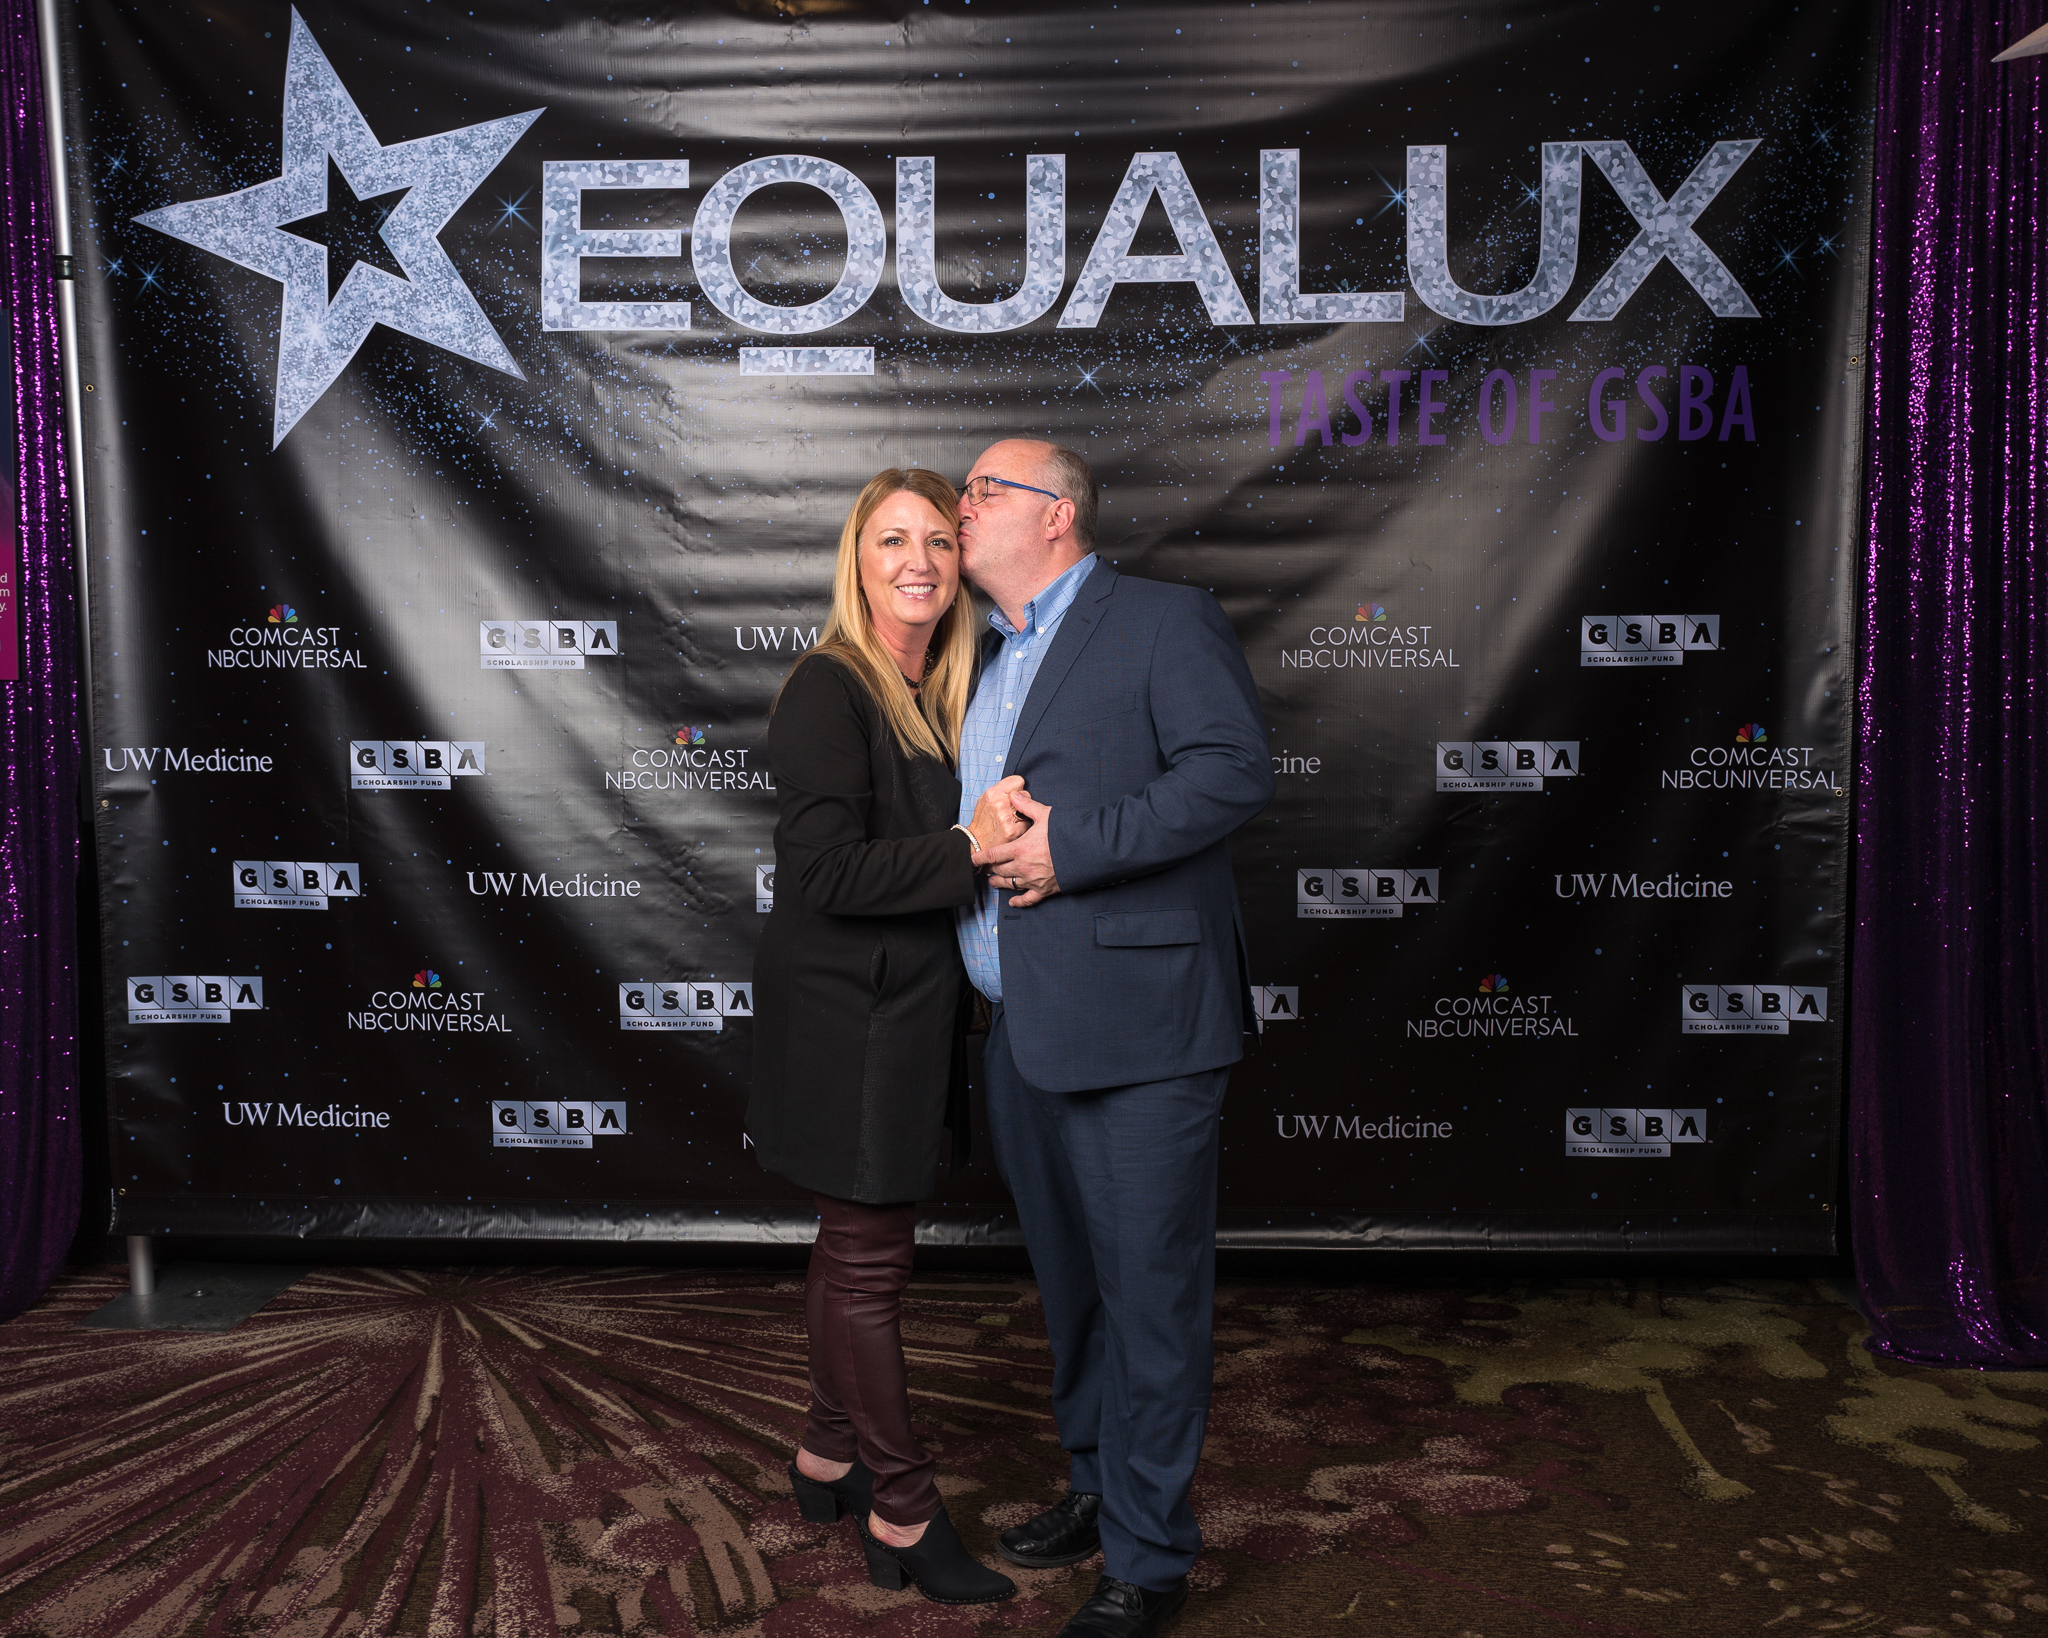 111718_GSBA EQUALUX at The Westin Seattle (Credit- Nate Gowdy)-49.jpg